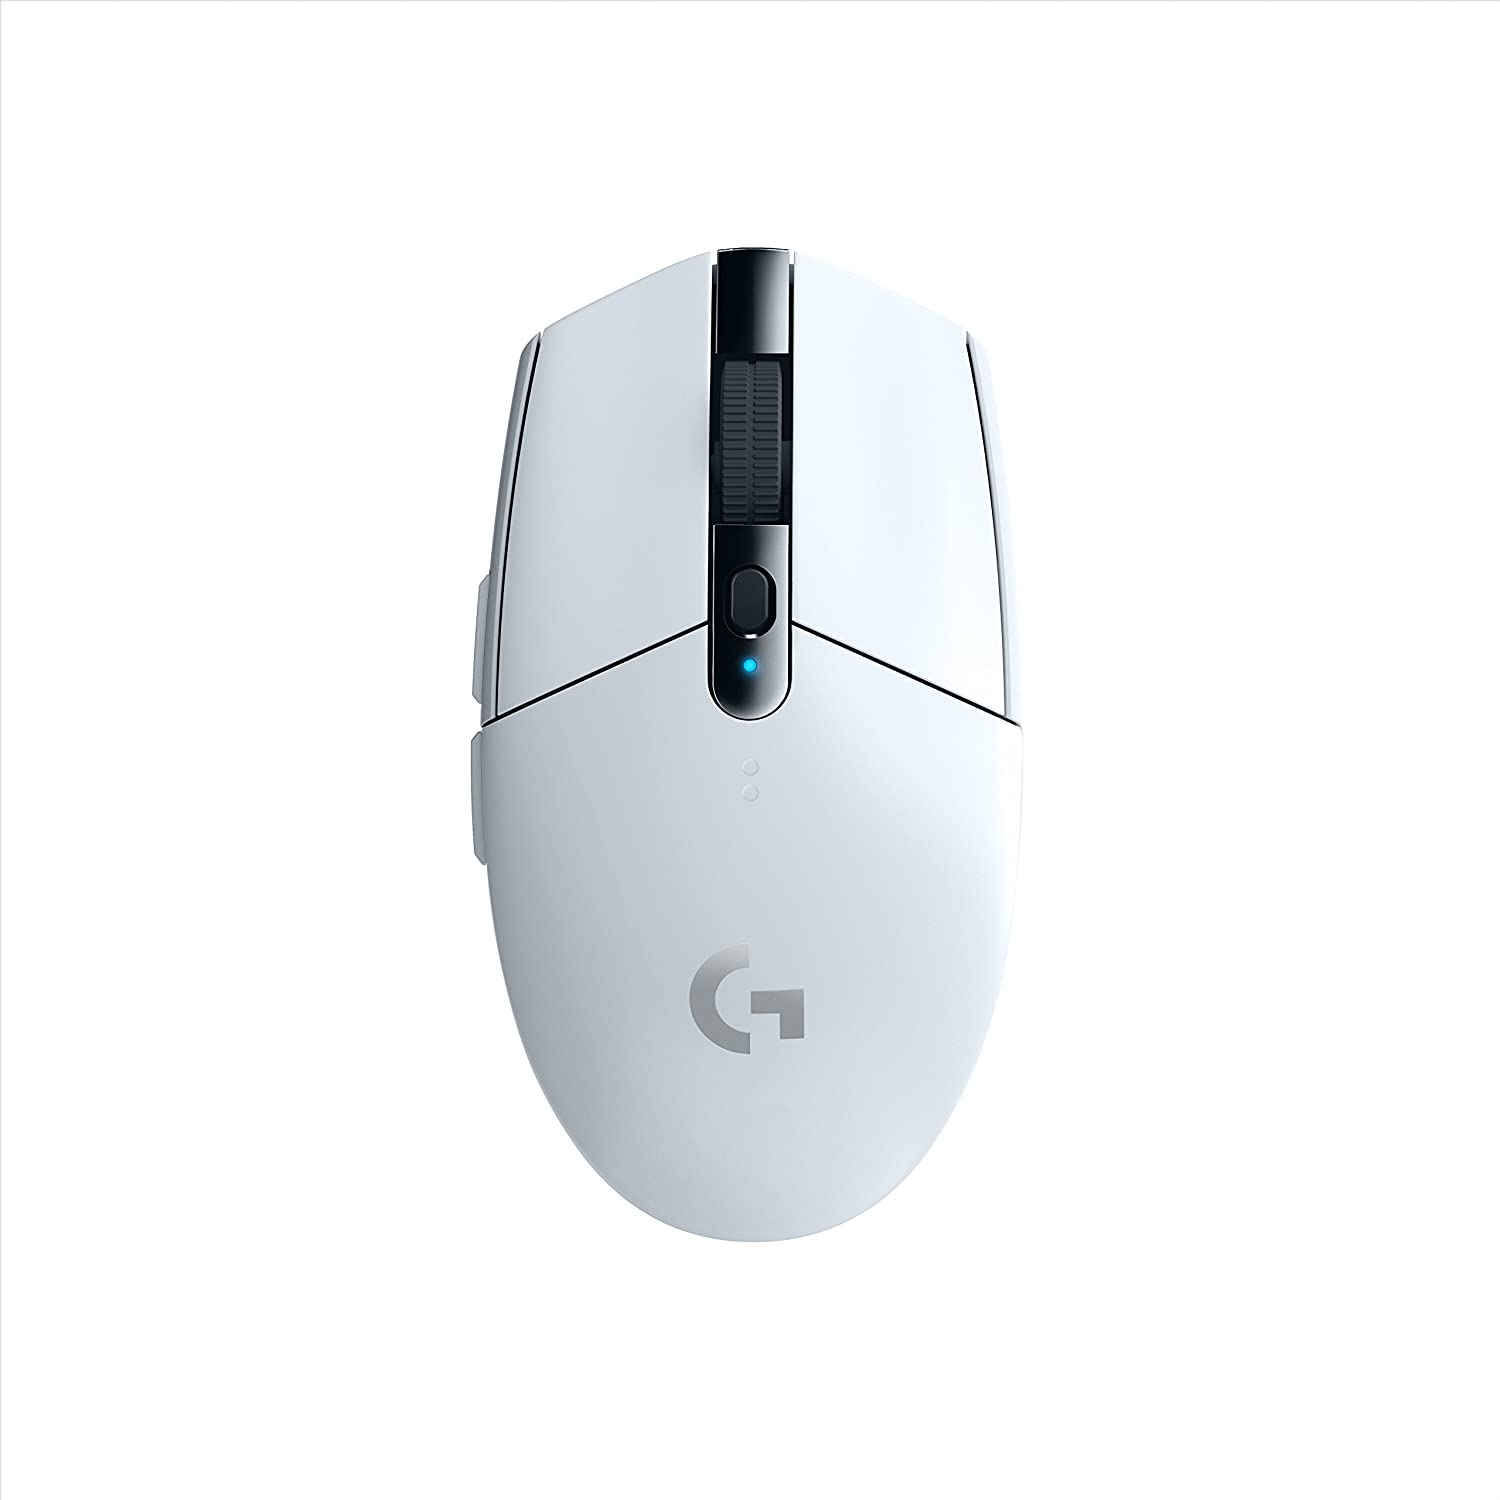 c6203af40d0 Amazon.com: Logitech G305 LIGHTSPEED Wireless Gaming Mouse, White:  Computers & Accessories